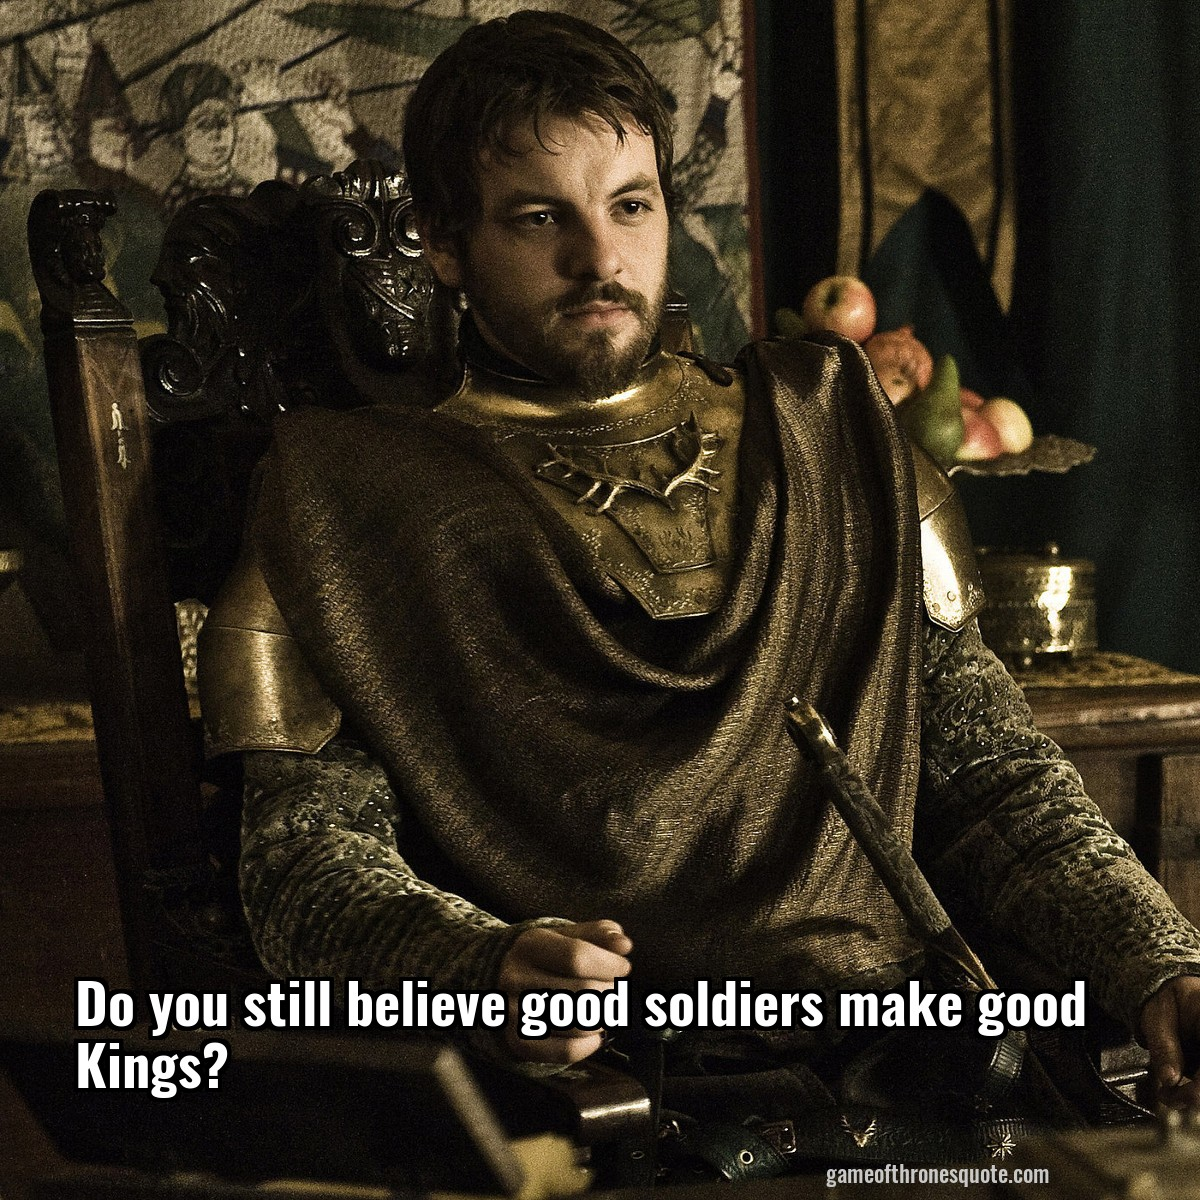 Do you still believe good soldiers make good Kings?